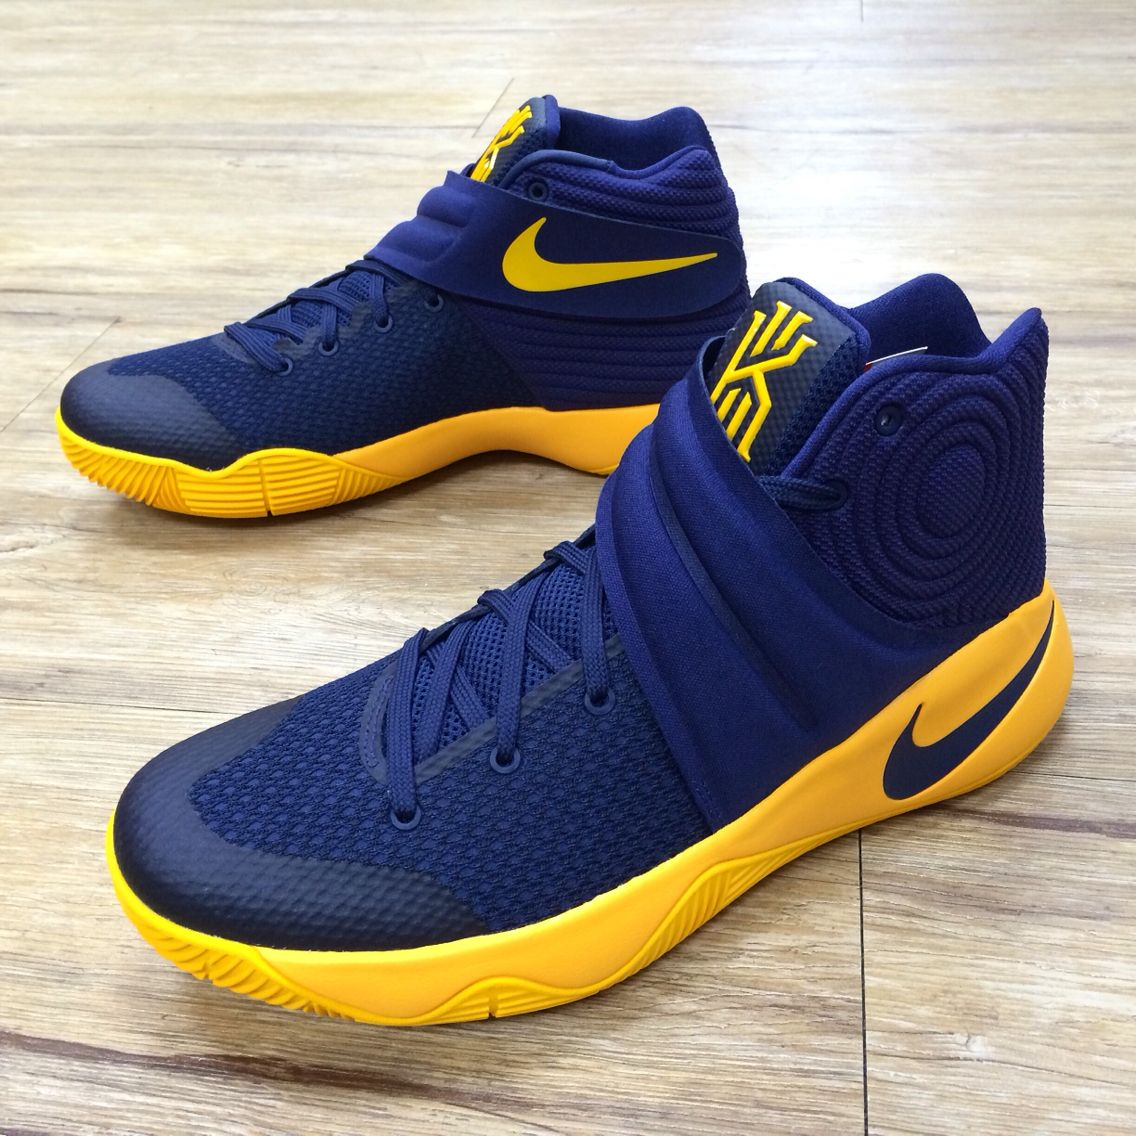 03e1d51edbde Nike Kyrie 2 EP II Irving Cavs Playoffs PE Navy Gold Mens Basketball  820537-447